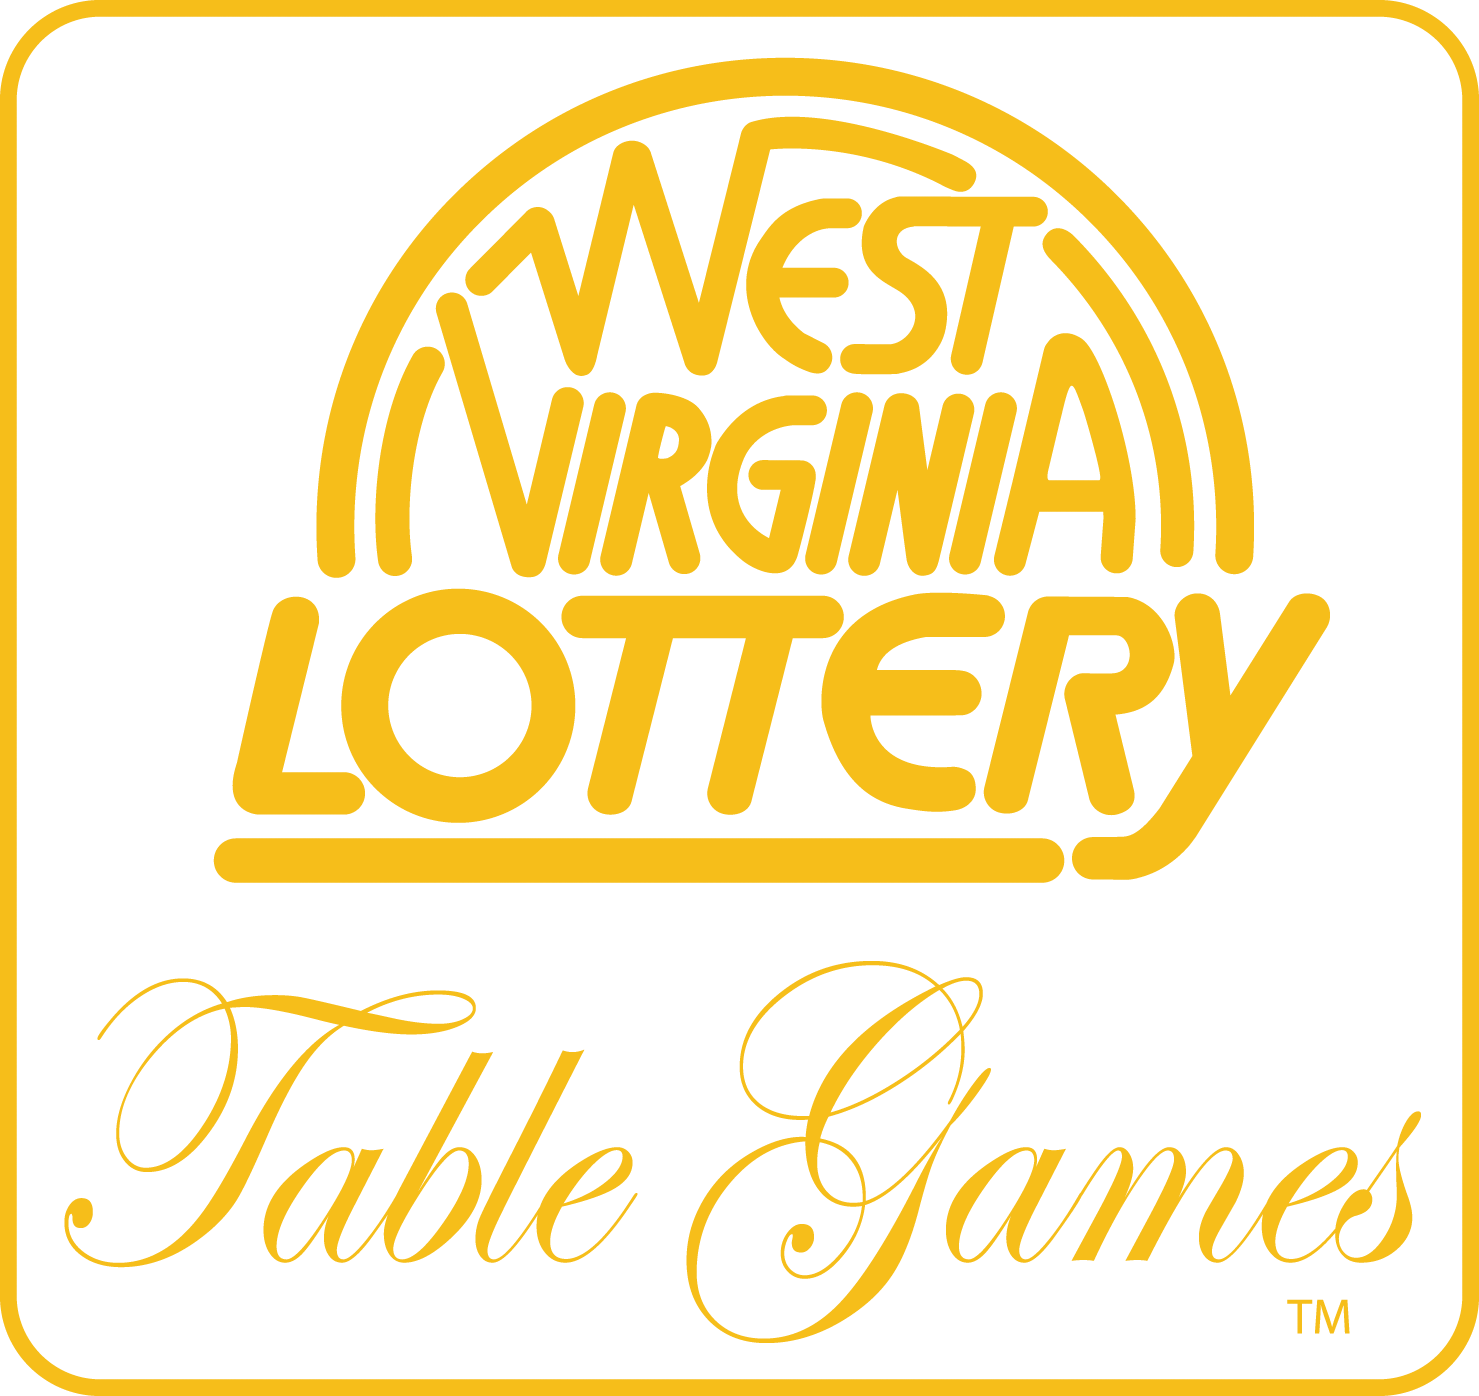 West Virginia Lottery Table Games logo